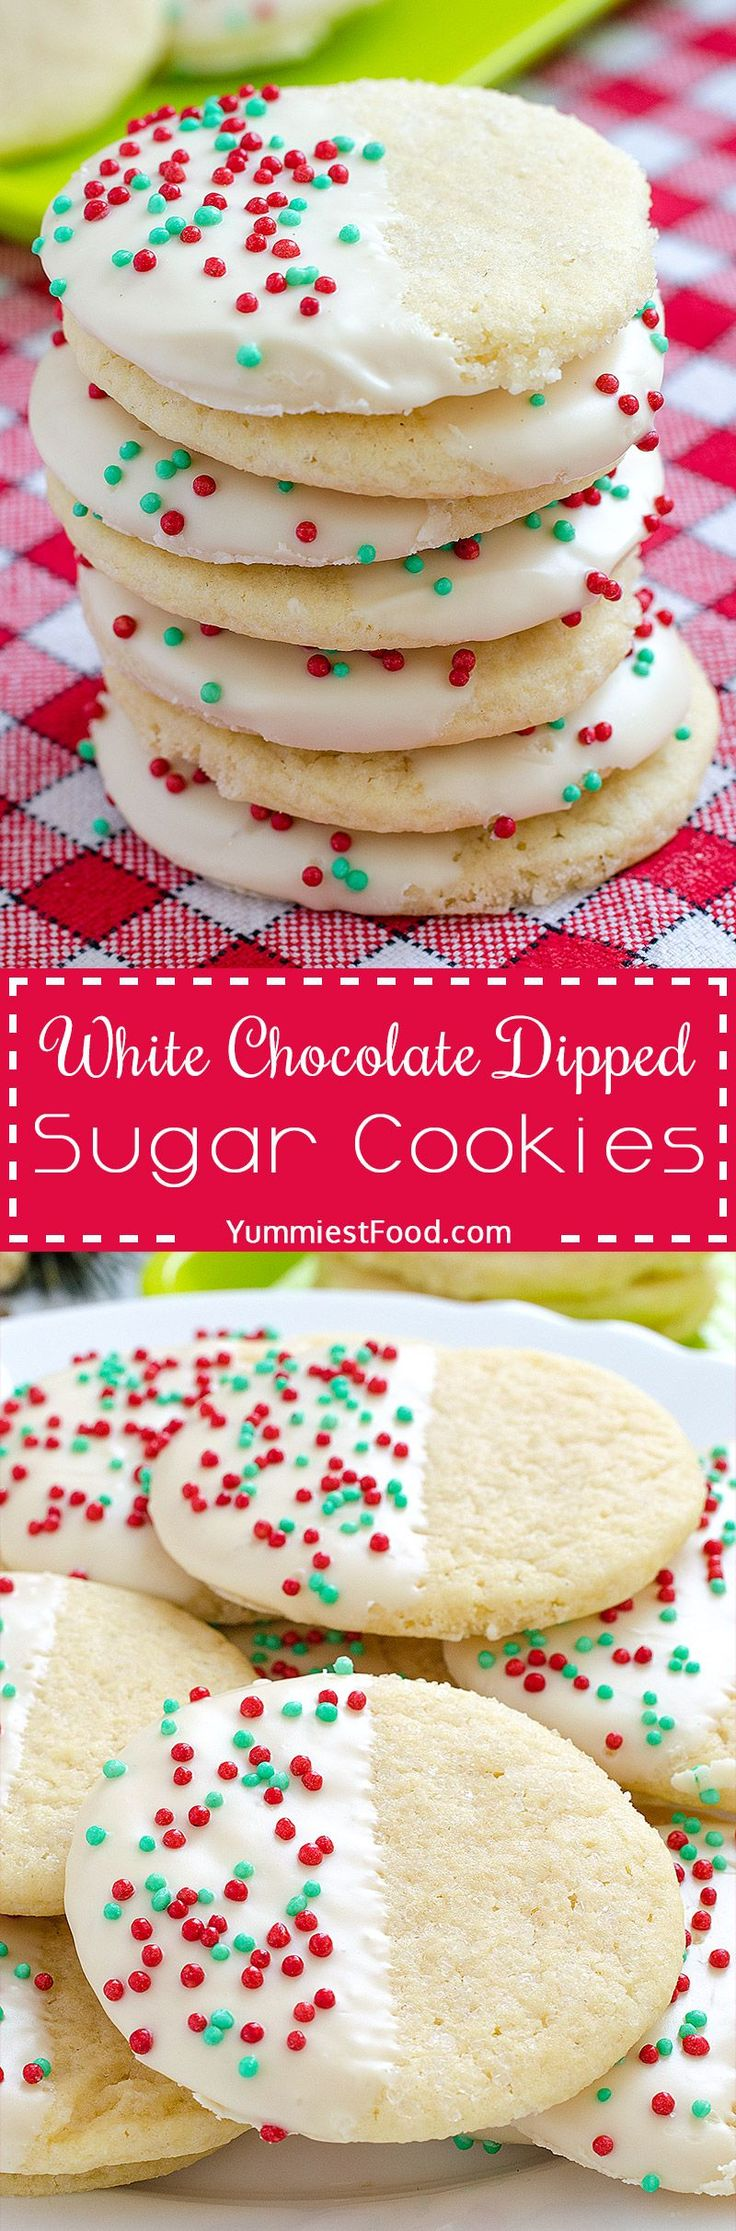 White Chocolate Dipped Sugar Cookies - a Christmas cookies must! So delicious, cute and very easy to make.. You need only few ingredients for these White Chocolate Dipped Sugar Cookies!